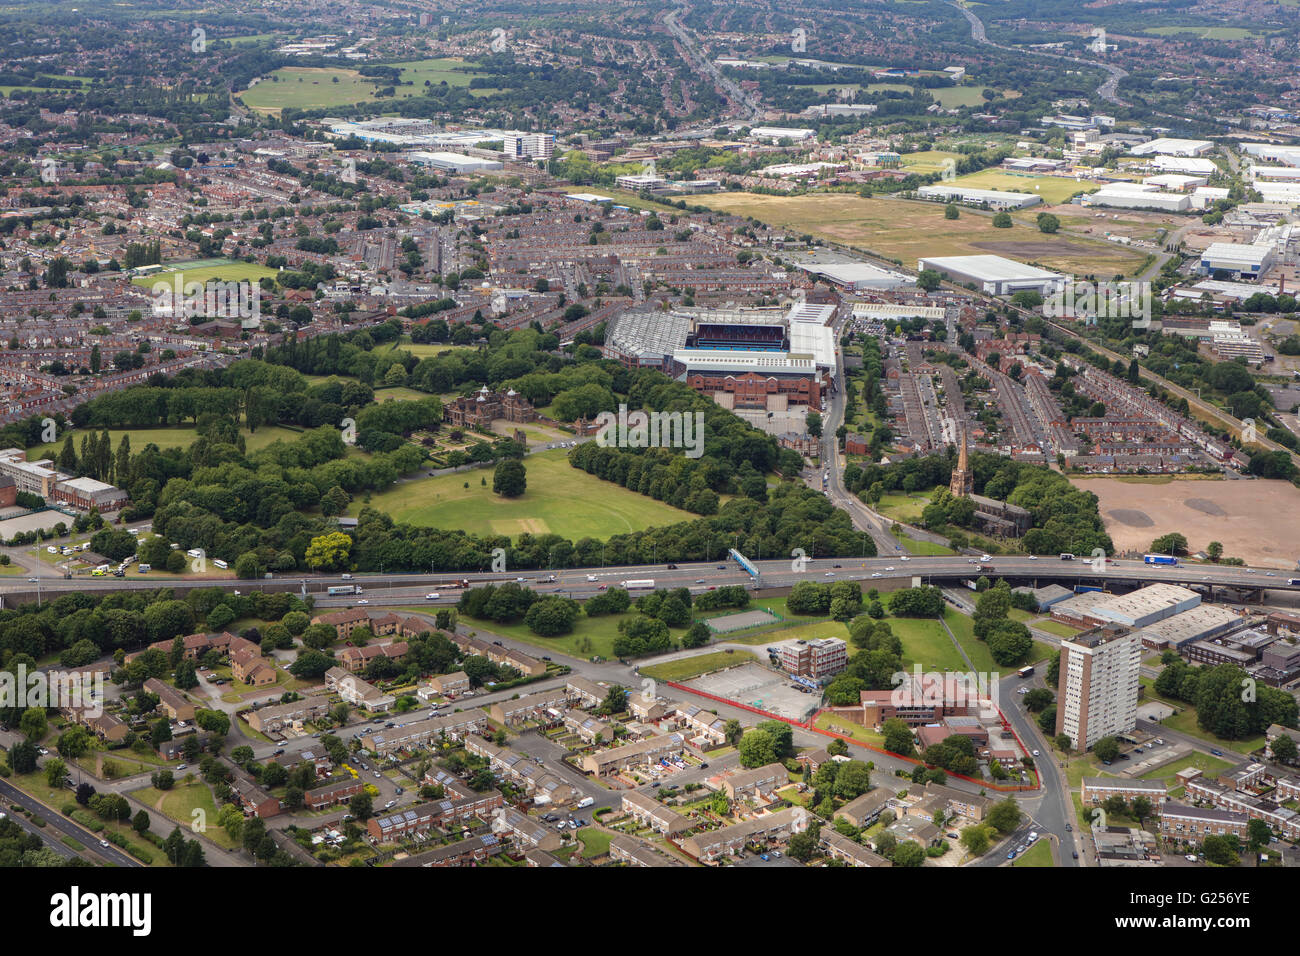 An aerial view of the Aston and Witton suburbs of Birmingham - Stock Image